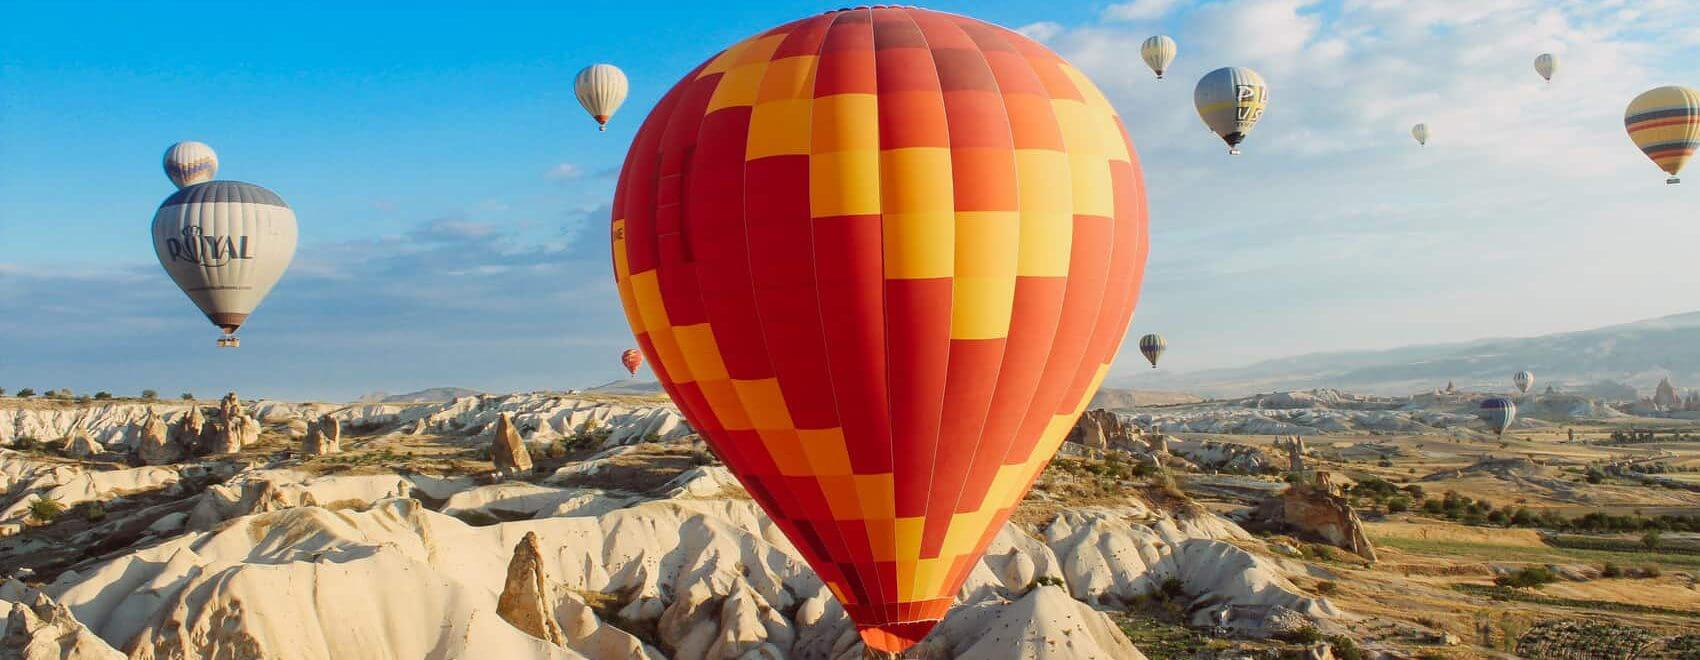 the best deals on Hot Air Ballooning in Cappadocia Turkey